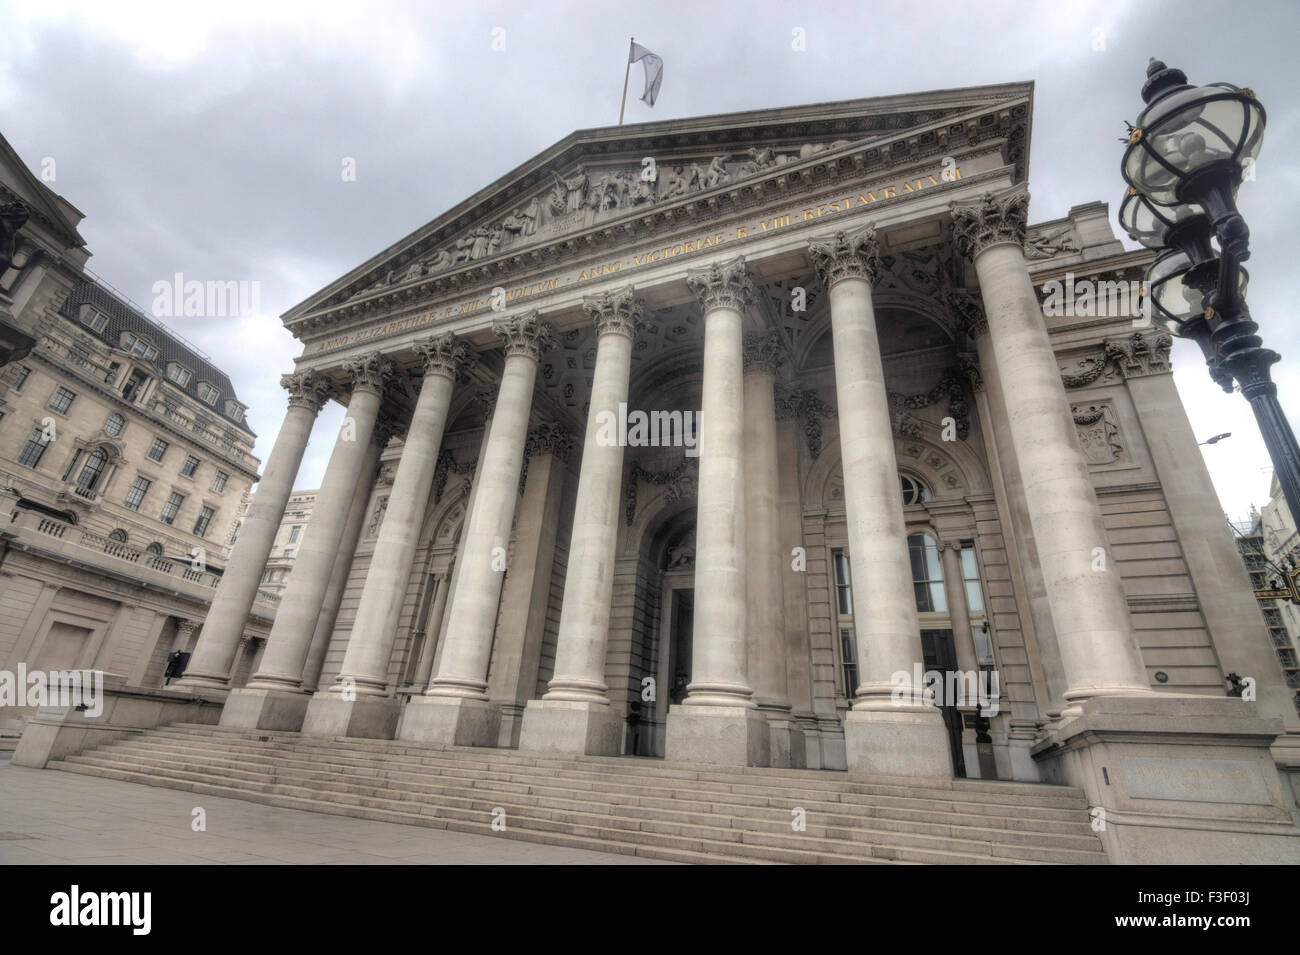 The royal exchange building in London city of London - Stock Image